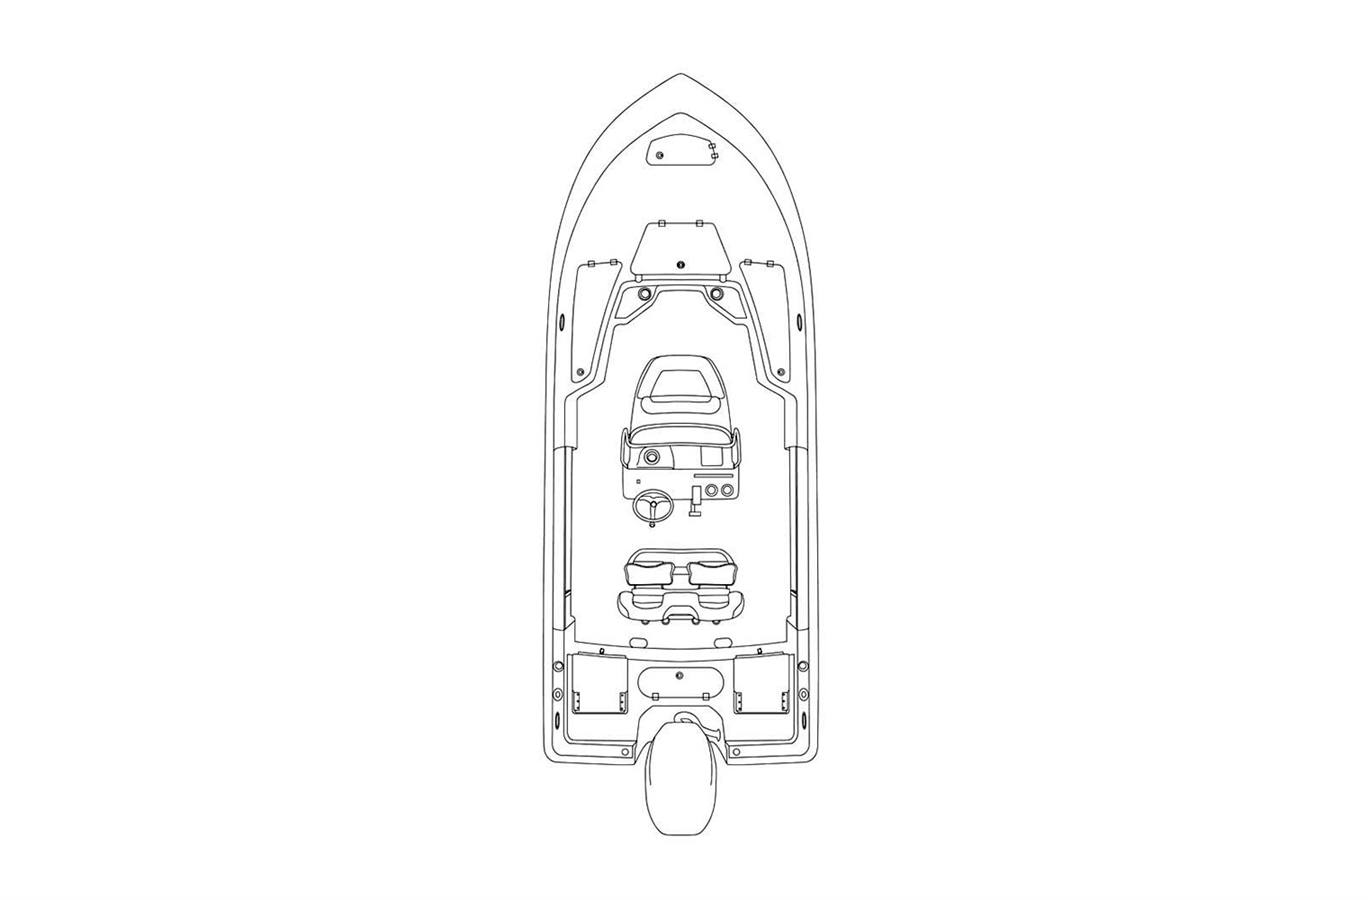 2018 Tidewater Boats 1910 Bay Max For Sale In Wilmington Nc Atlas Jack Plate Wiring Diagram Marker 17 Marine 910 821 0190